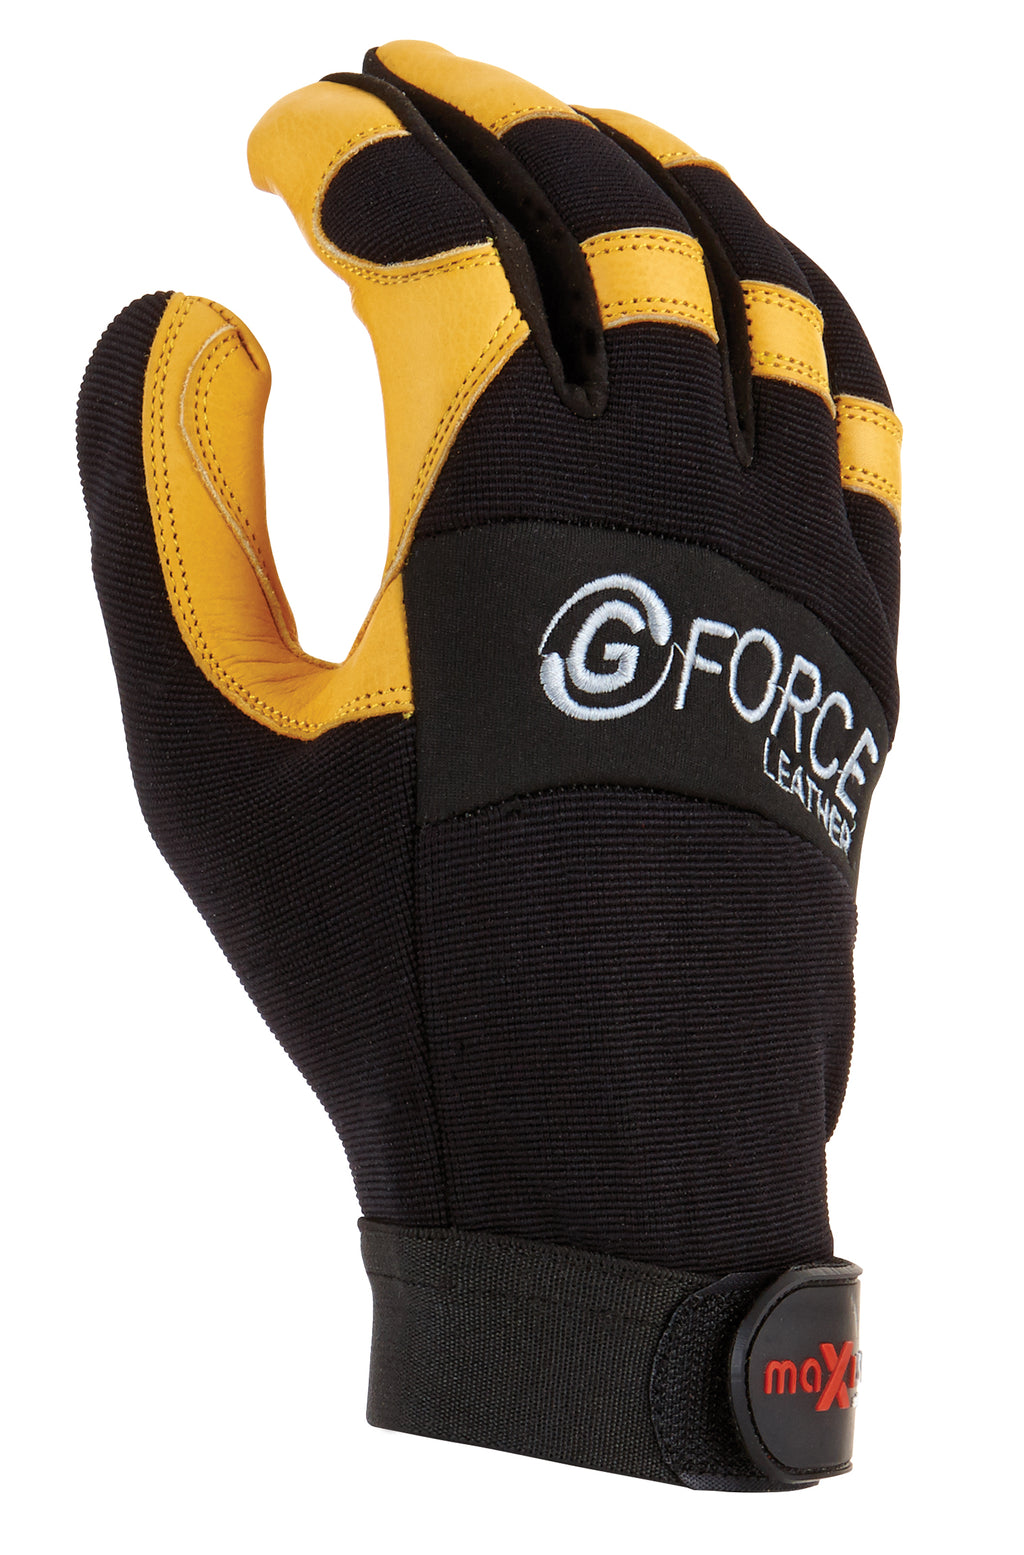 G-Force 'Leather' Mechanics Glove